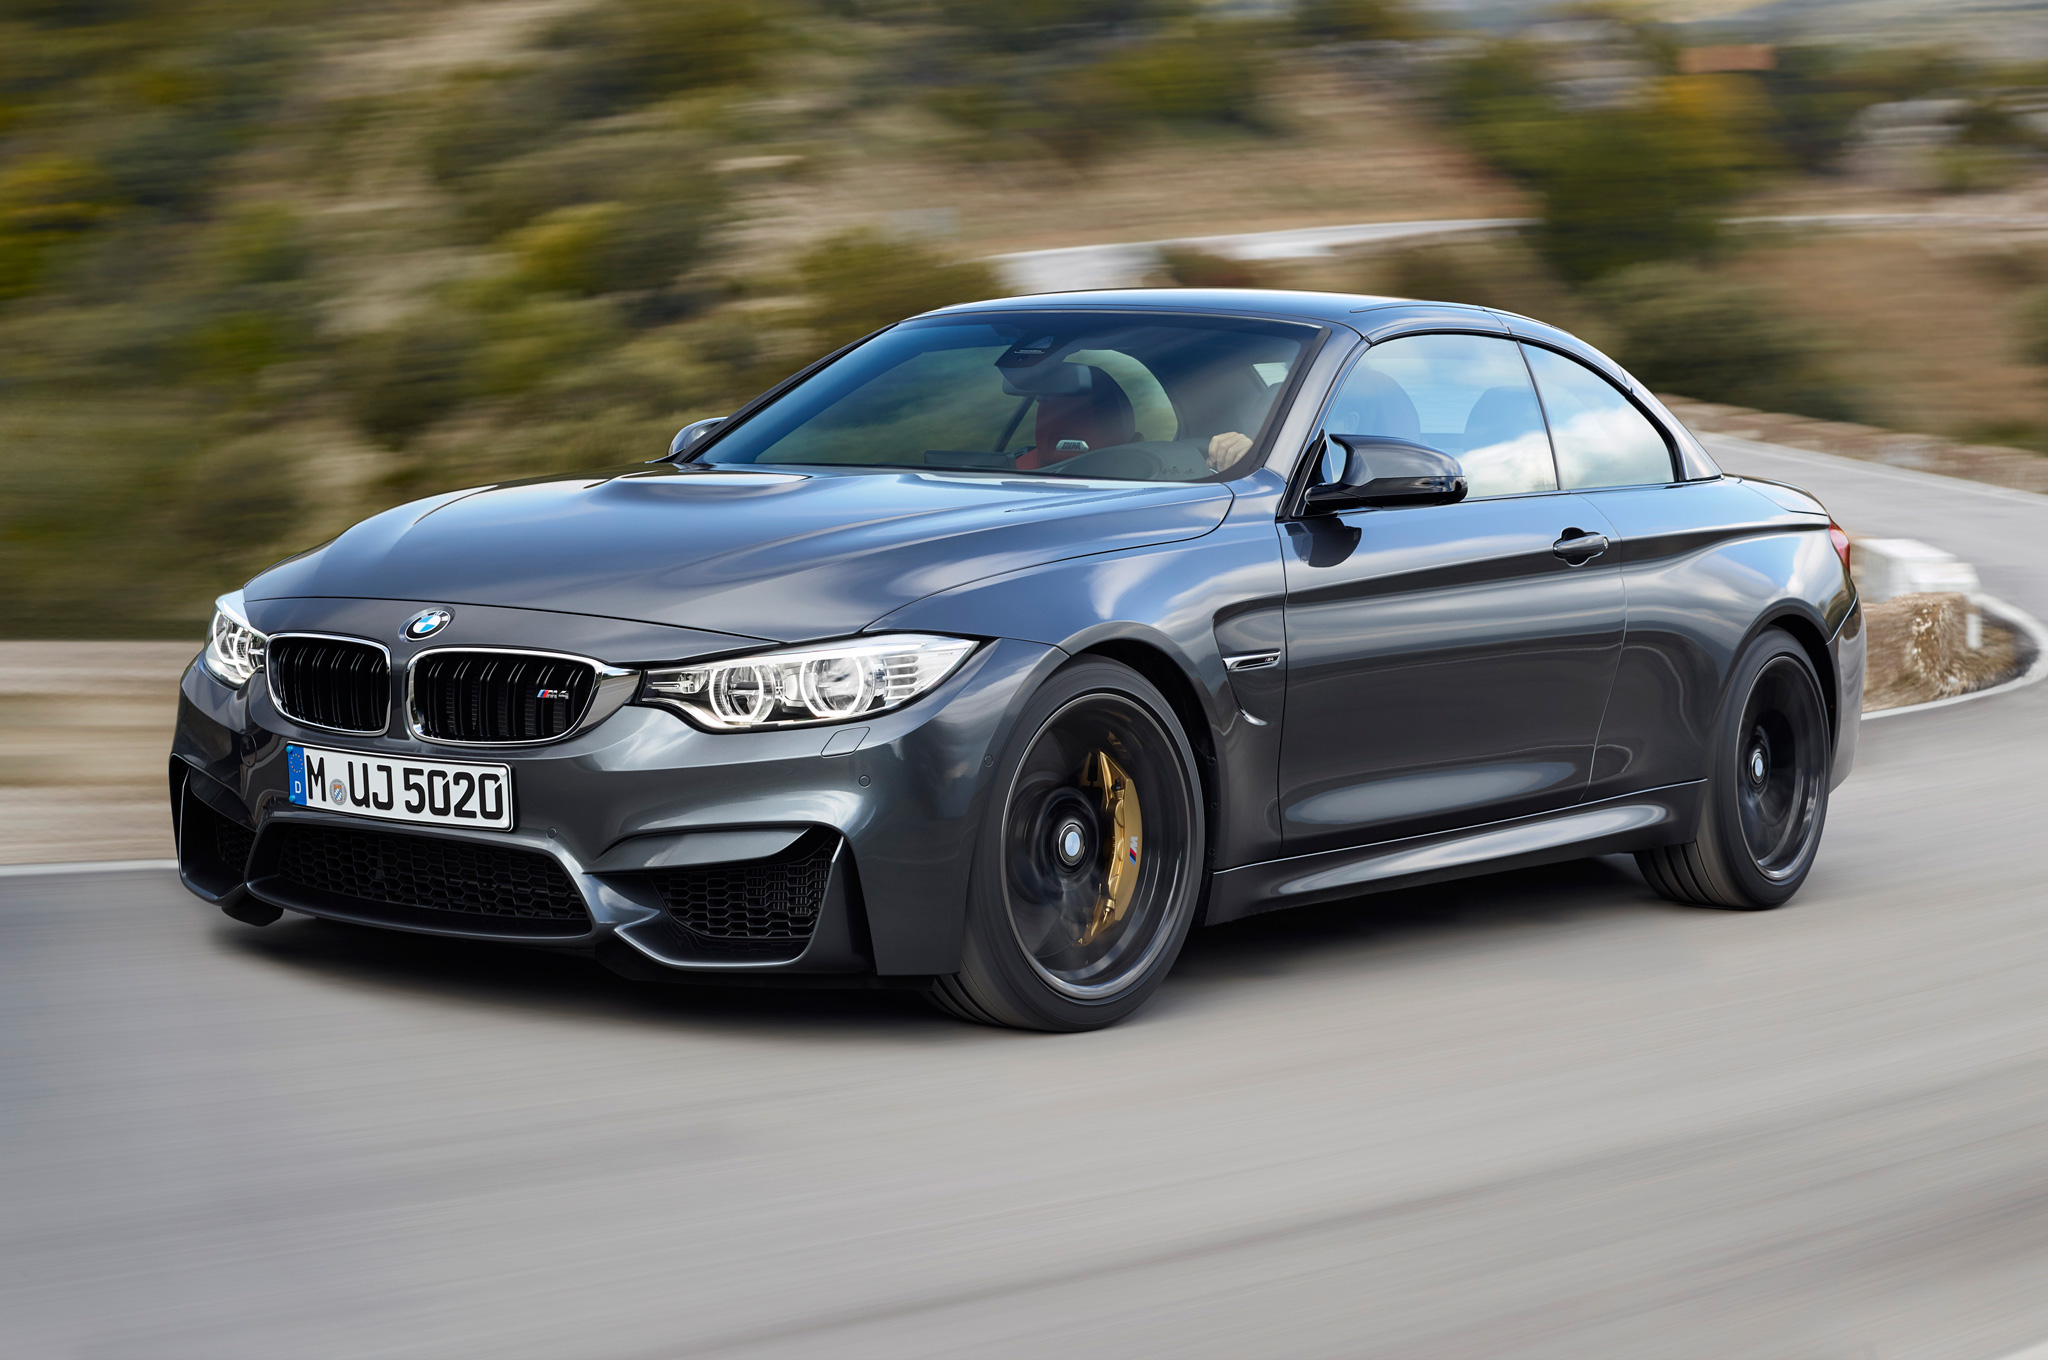 2015 Bmw M4 Convertible Road Performance (Photo 22 of 50)